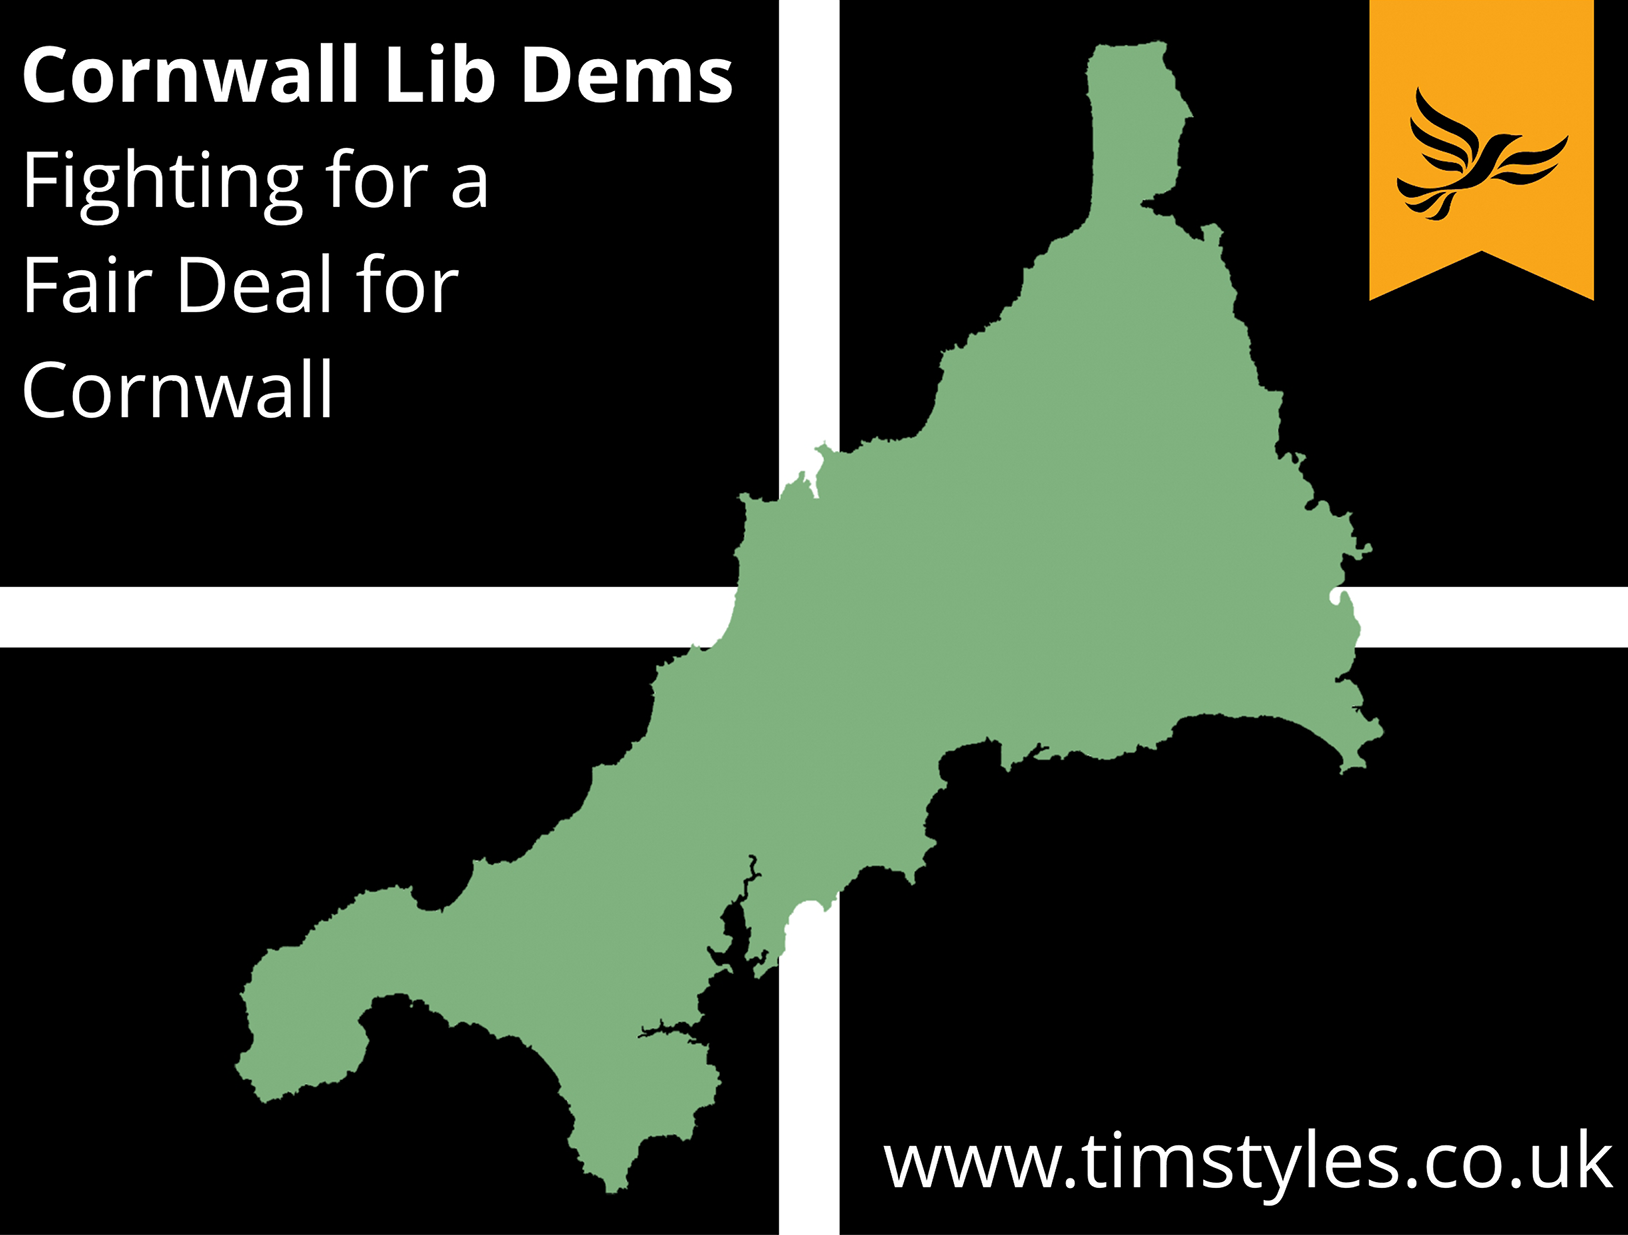 Fair Deal for Cornwall